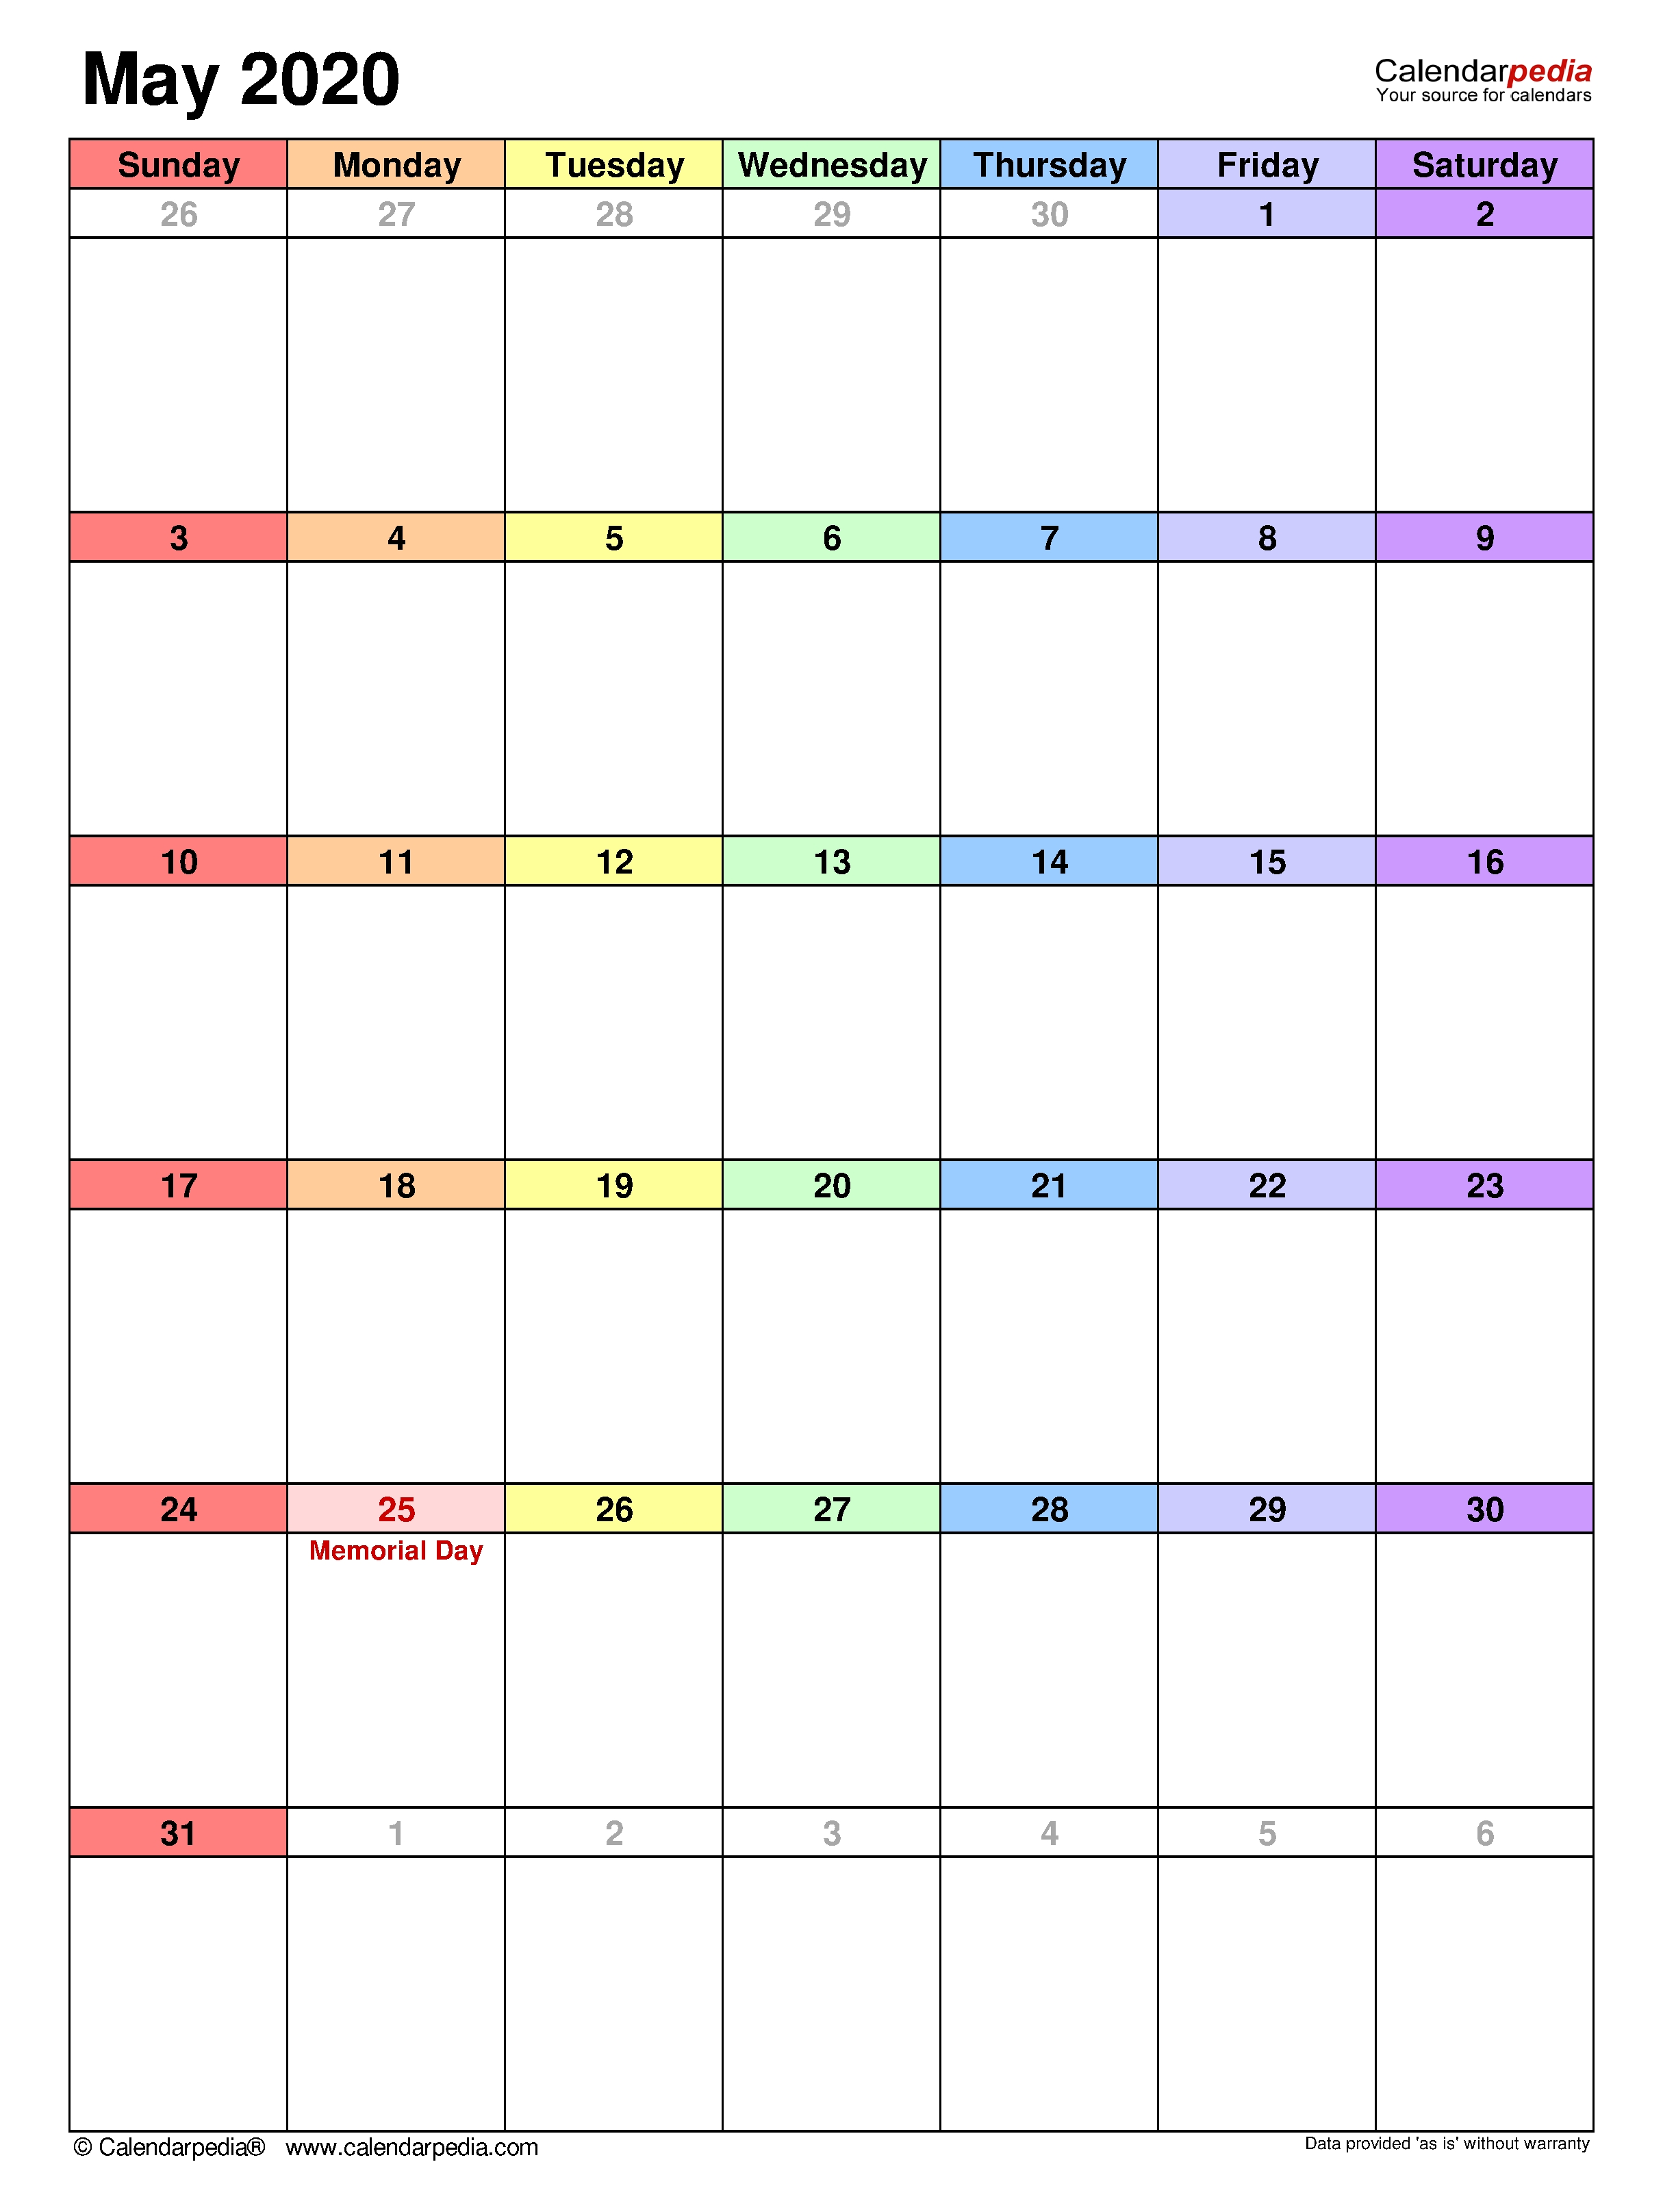 May 2020 - Calendar Templates For Word, Excel And Pdf with One Week Per Page 2020